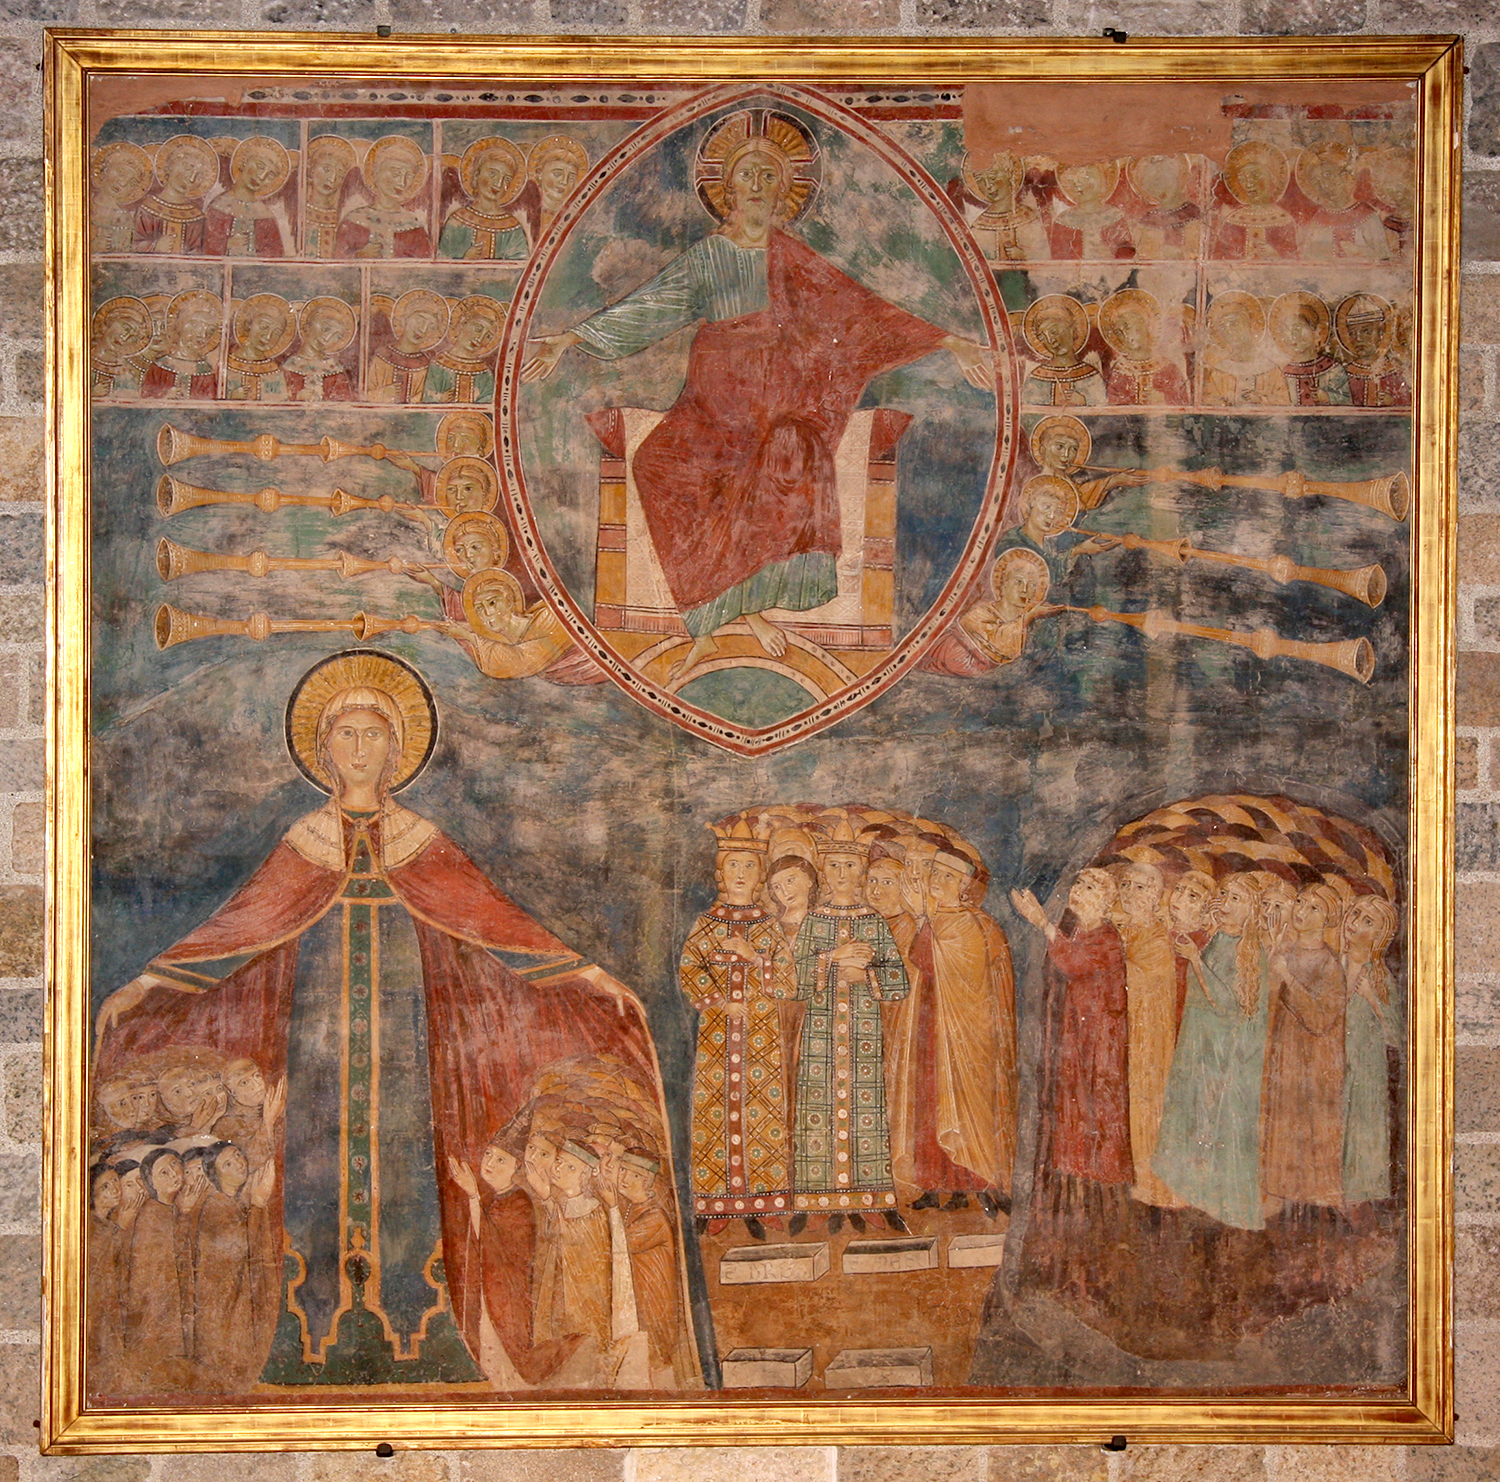 Christ in Majesty, from a church in Spoleto, 14th century, fresco, in the Great Hall of Glencairn Museum. In 1931 Raymond Pitcairn loaned this fresco to the Philadelphia Museum of Art for the opening of their new medieval galleries.